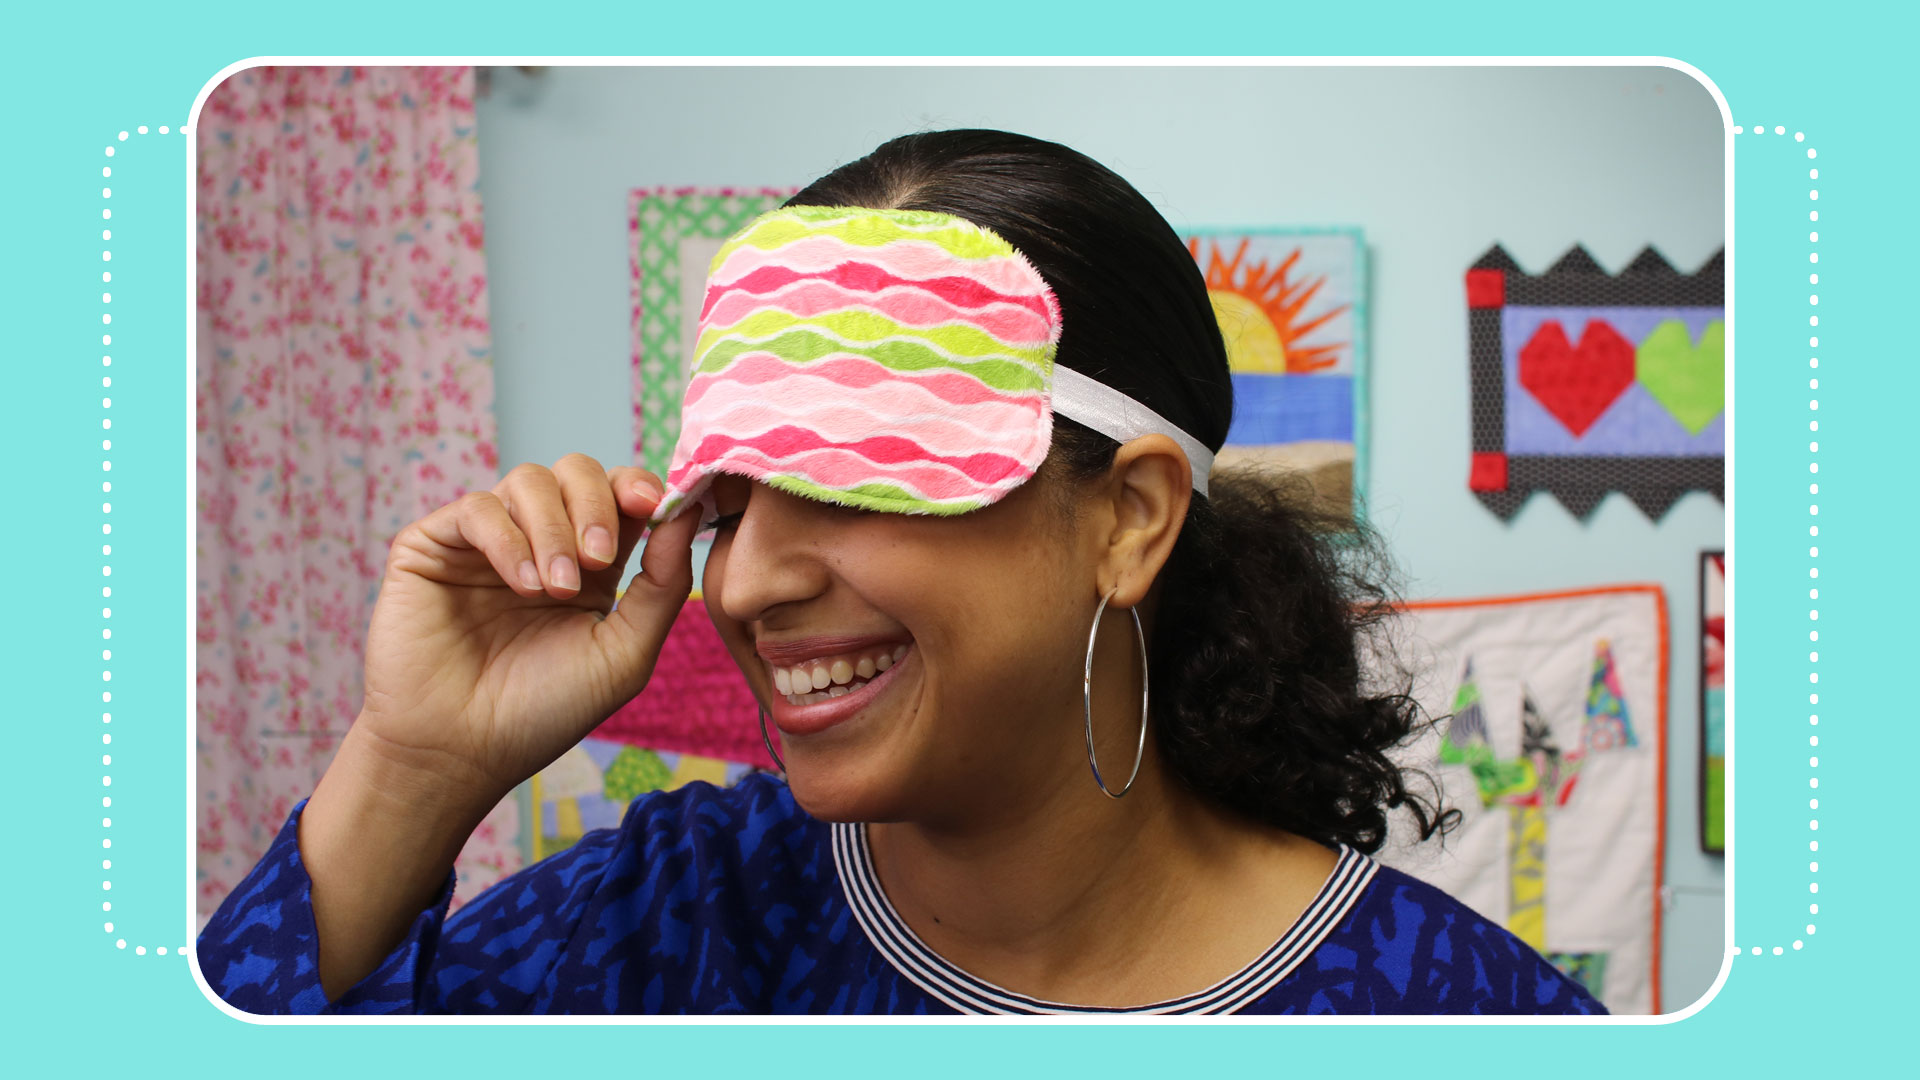 sleep-eye-mask-yt-thumbnail